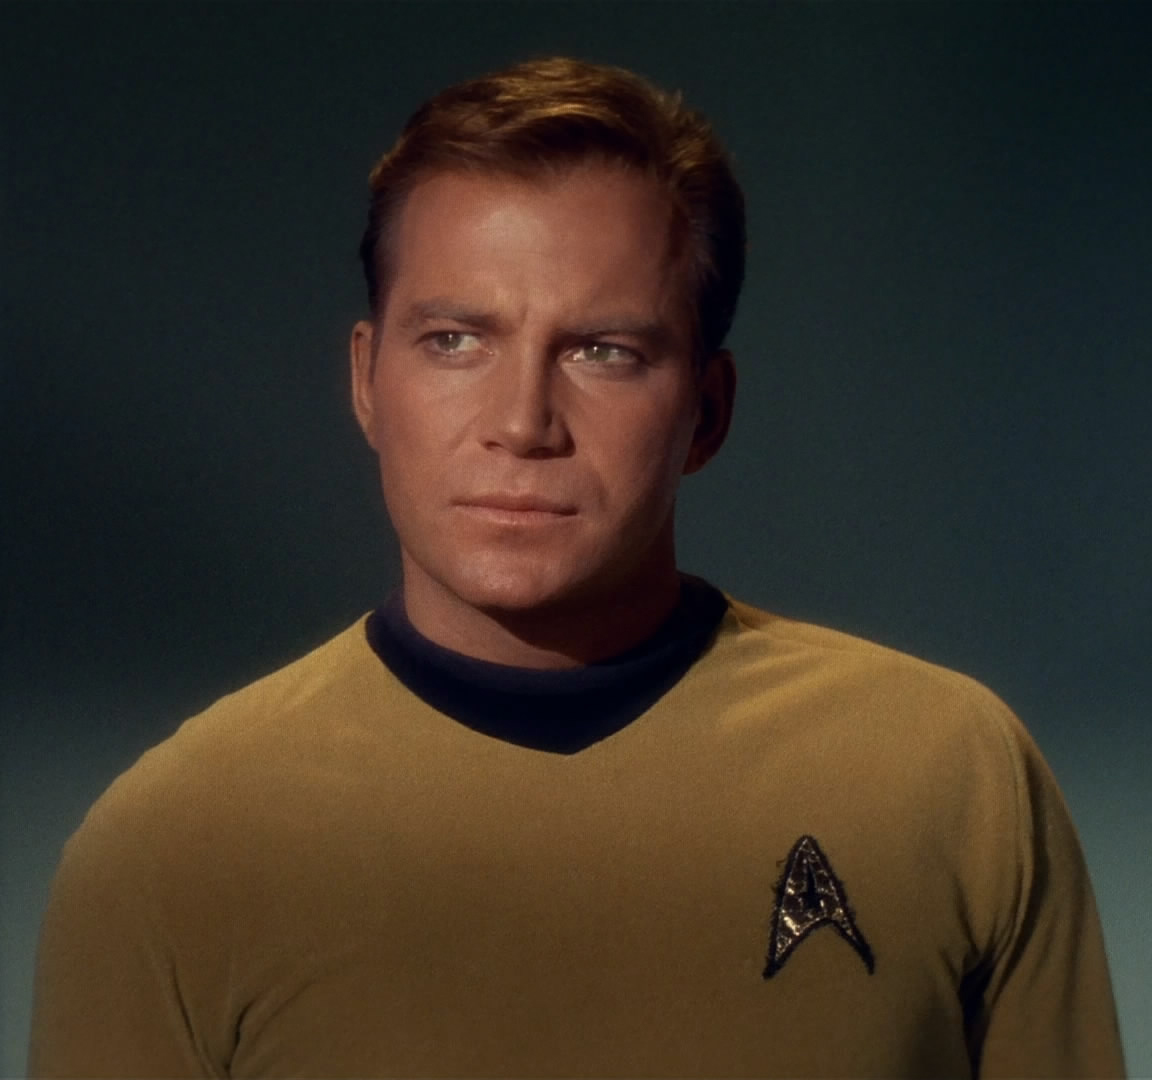 william-shatner-captain-james-kirk.jpg